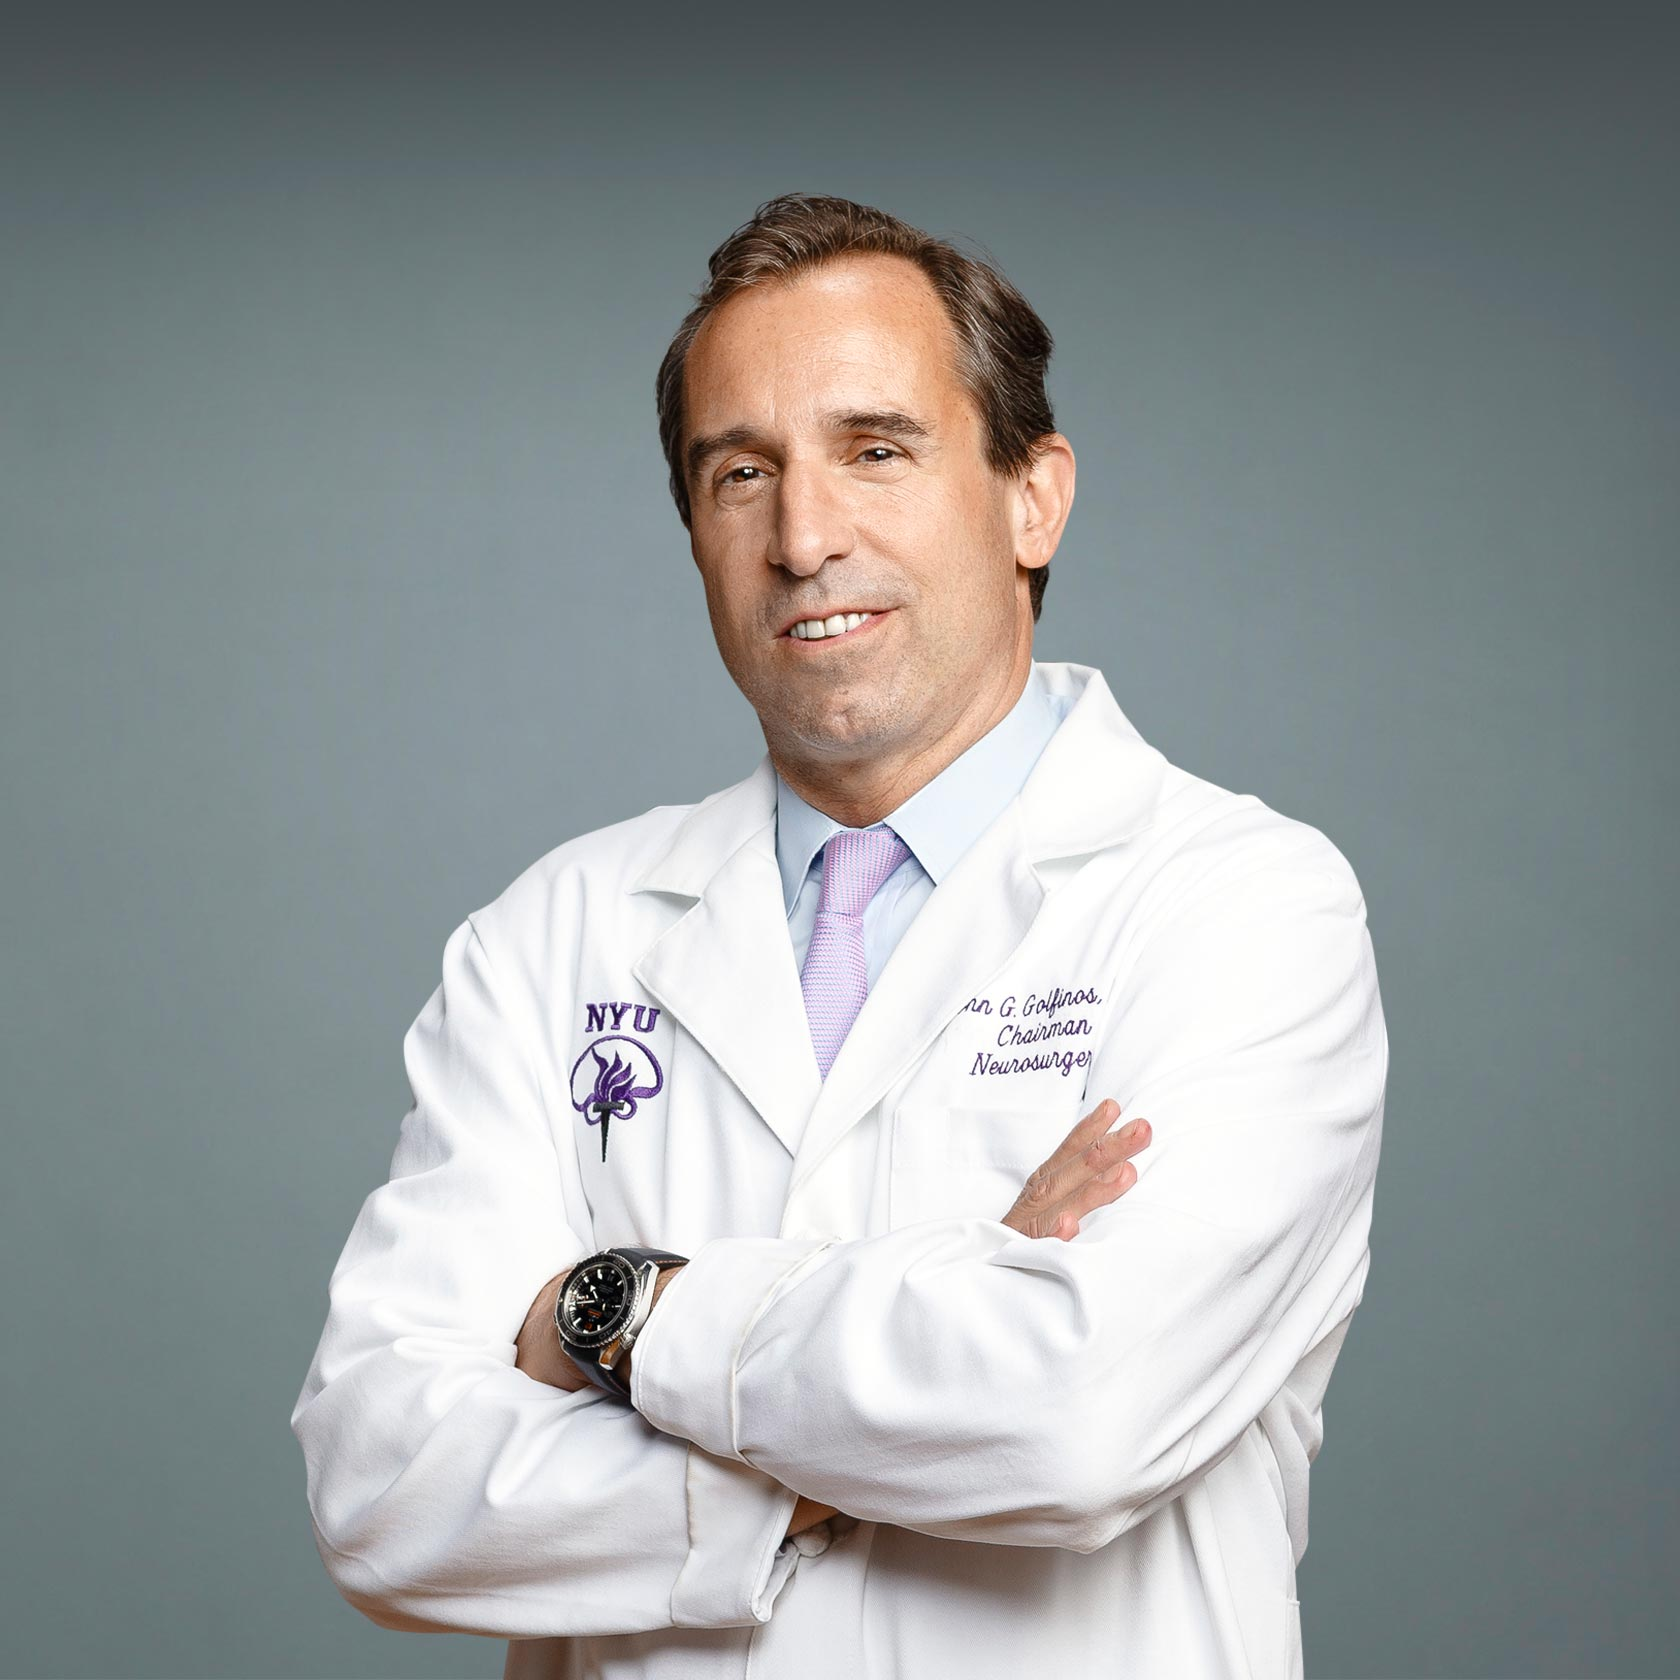 Neurosurgeon Dr. John Golfinos